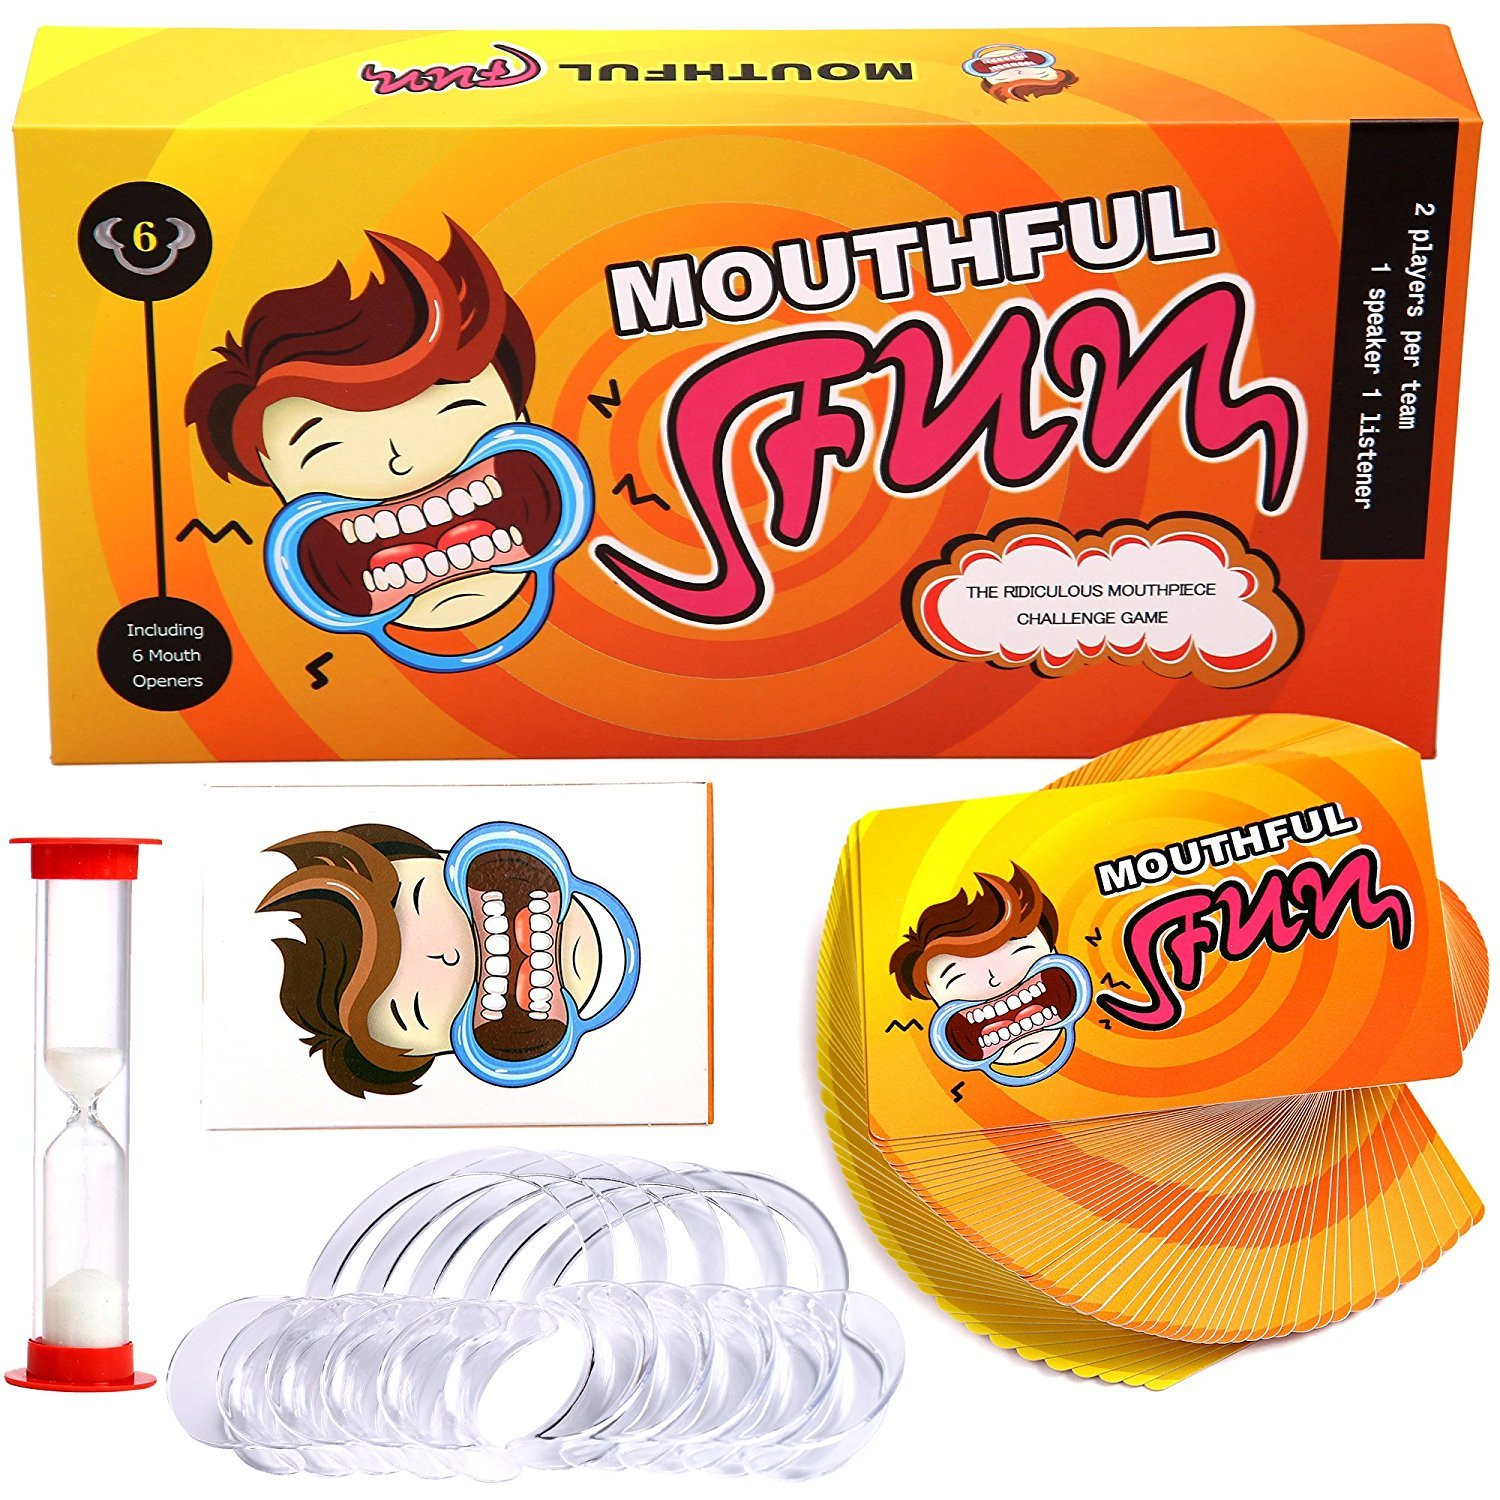 Mouthful Fun Card Game - Original Hilarious Lipless MouthGuard Challenge Board Game Party and Family Friendly Pack for Kids and Adults